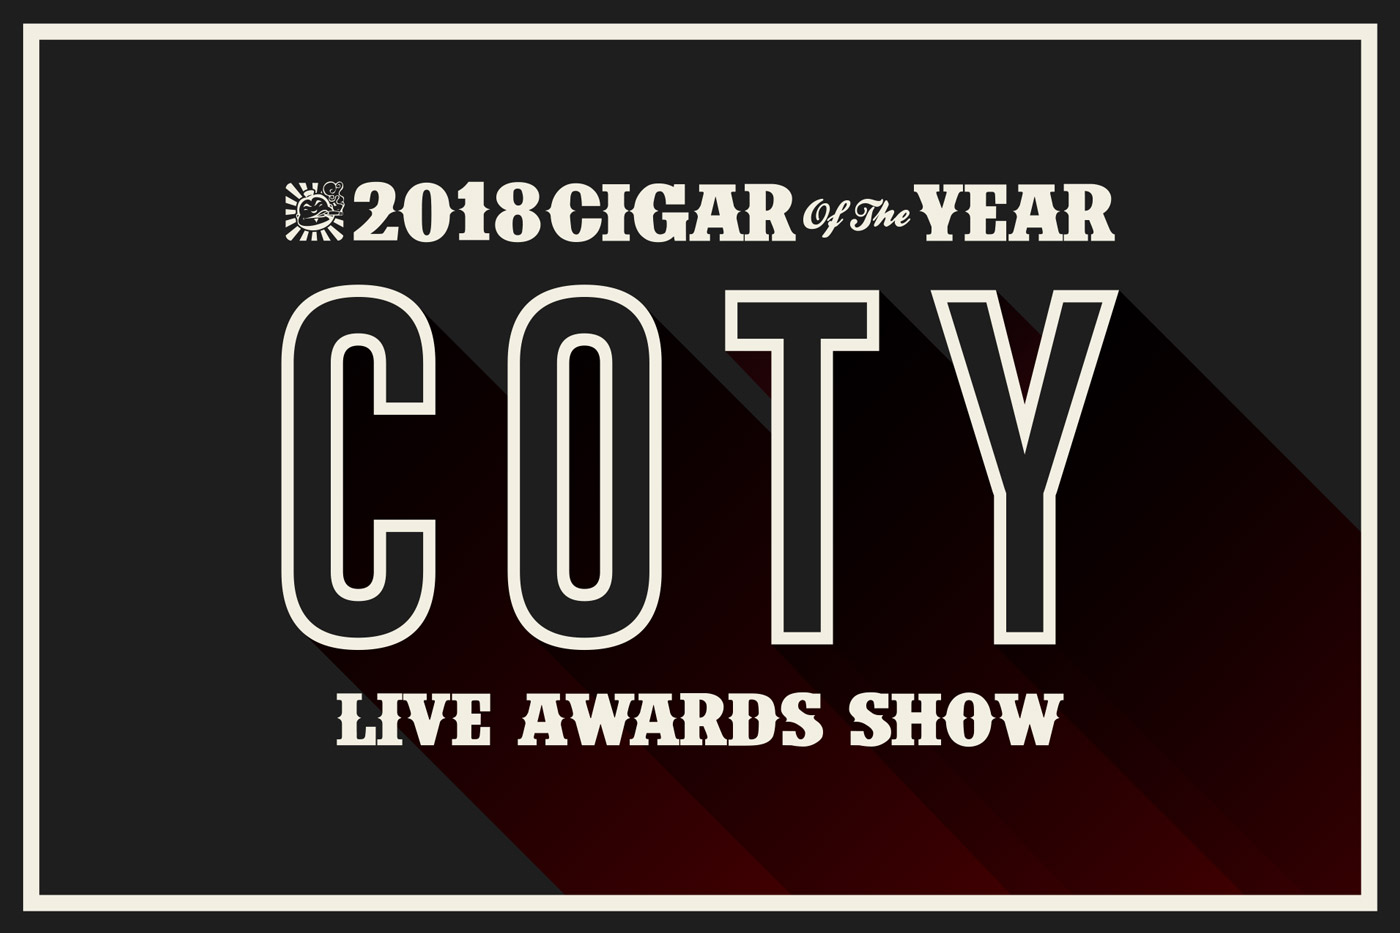 2018 Cigar of the Year Awards Show